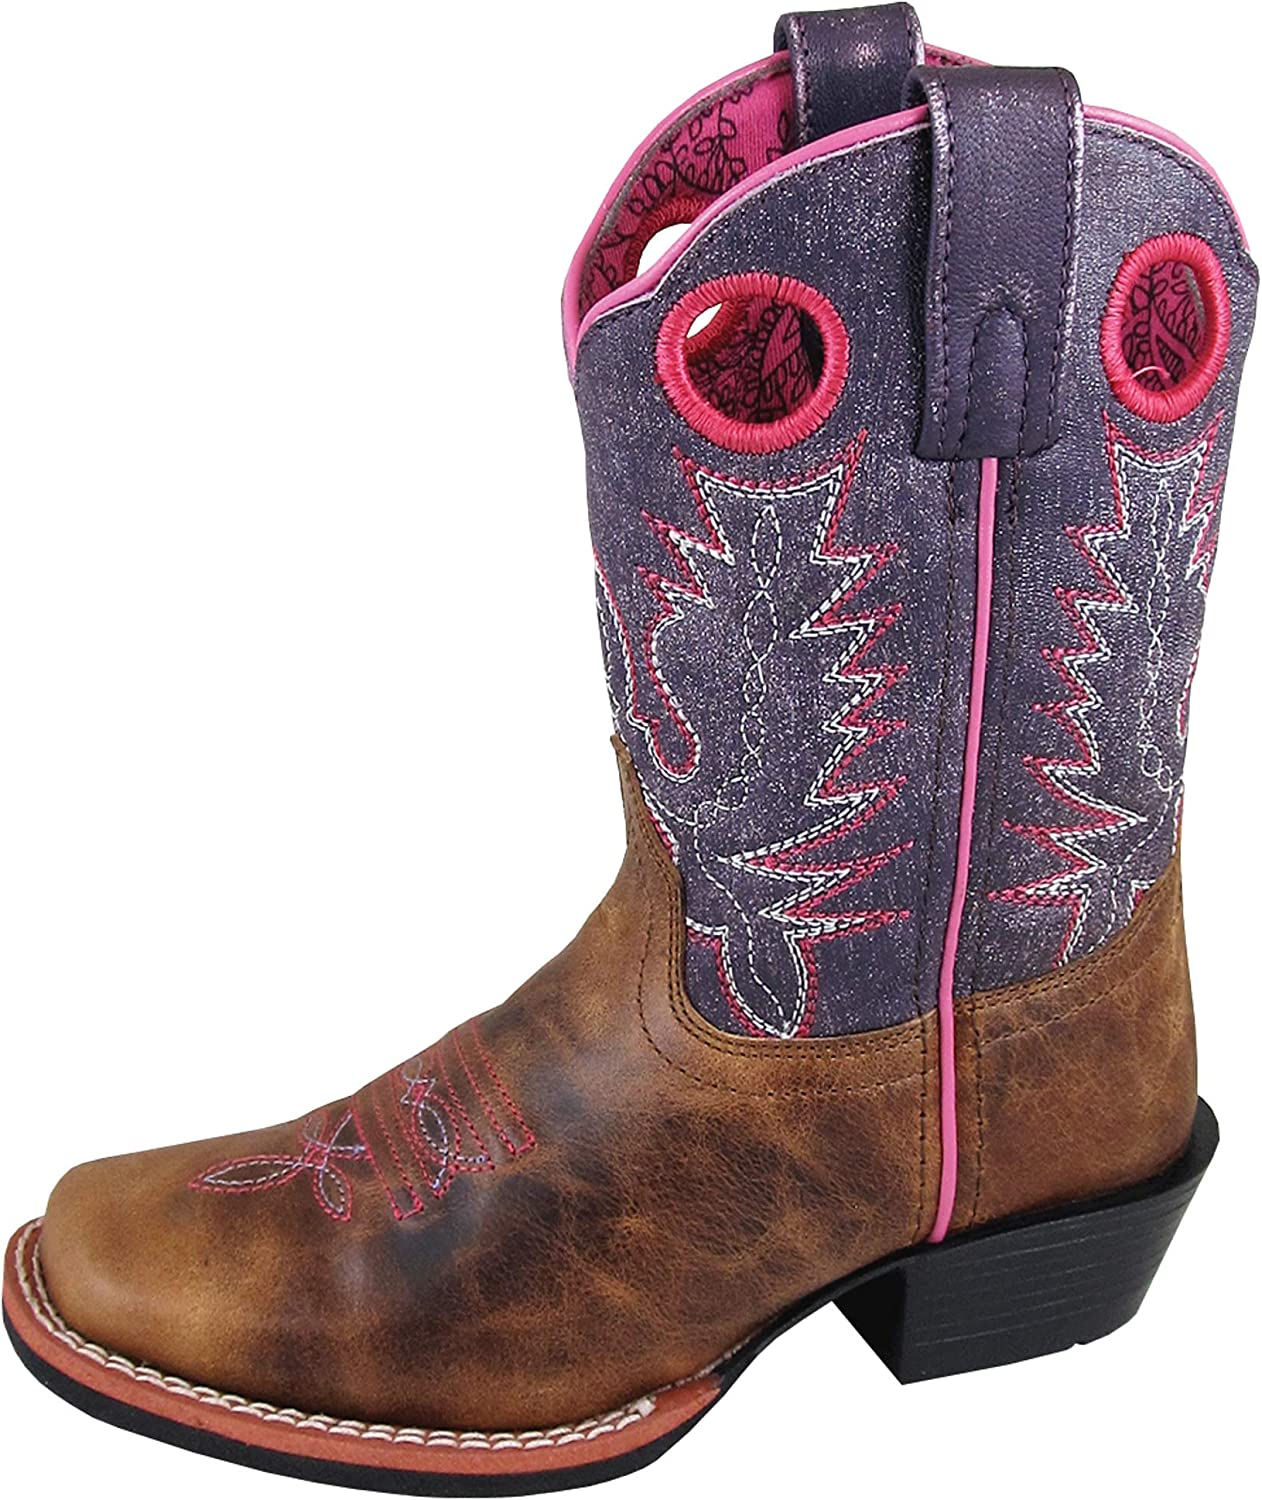 Smoky Mountain Boots Ellie Large special price !! Square Toe Children's Leather Wholesale